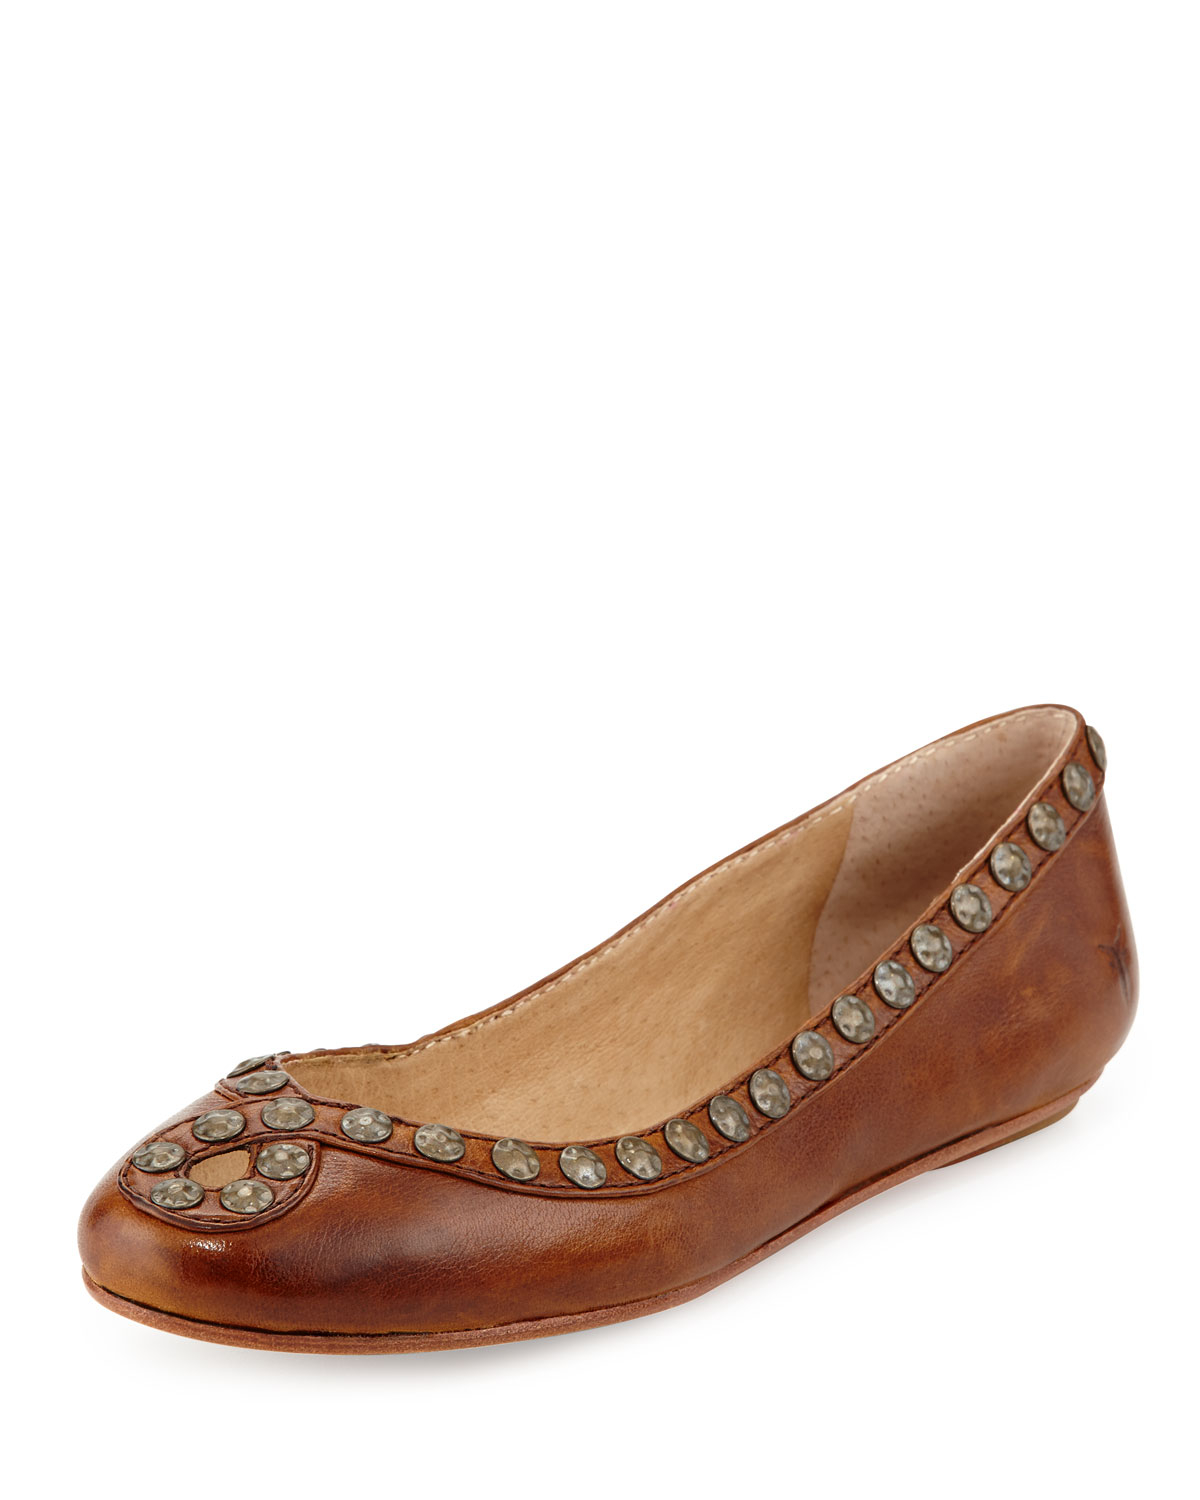 frye hammered stud leather flat cognac 6 in brown lyst